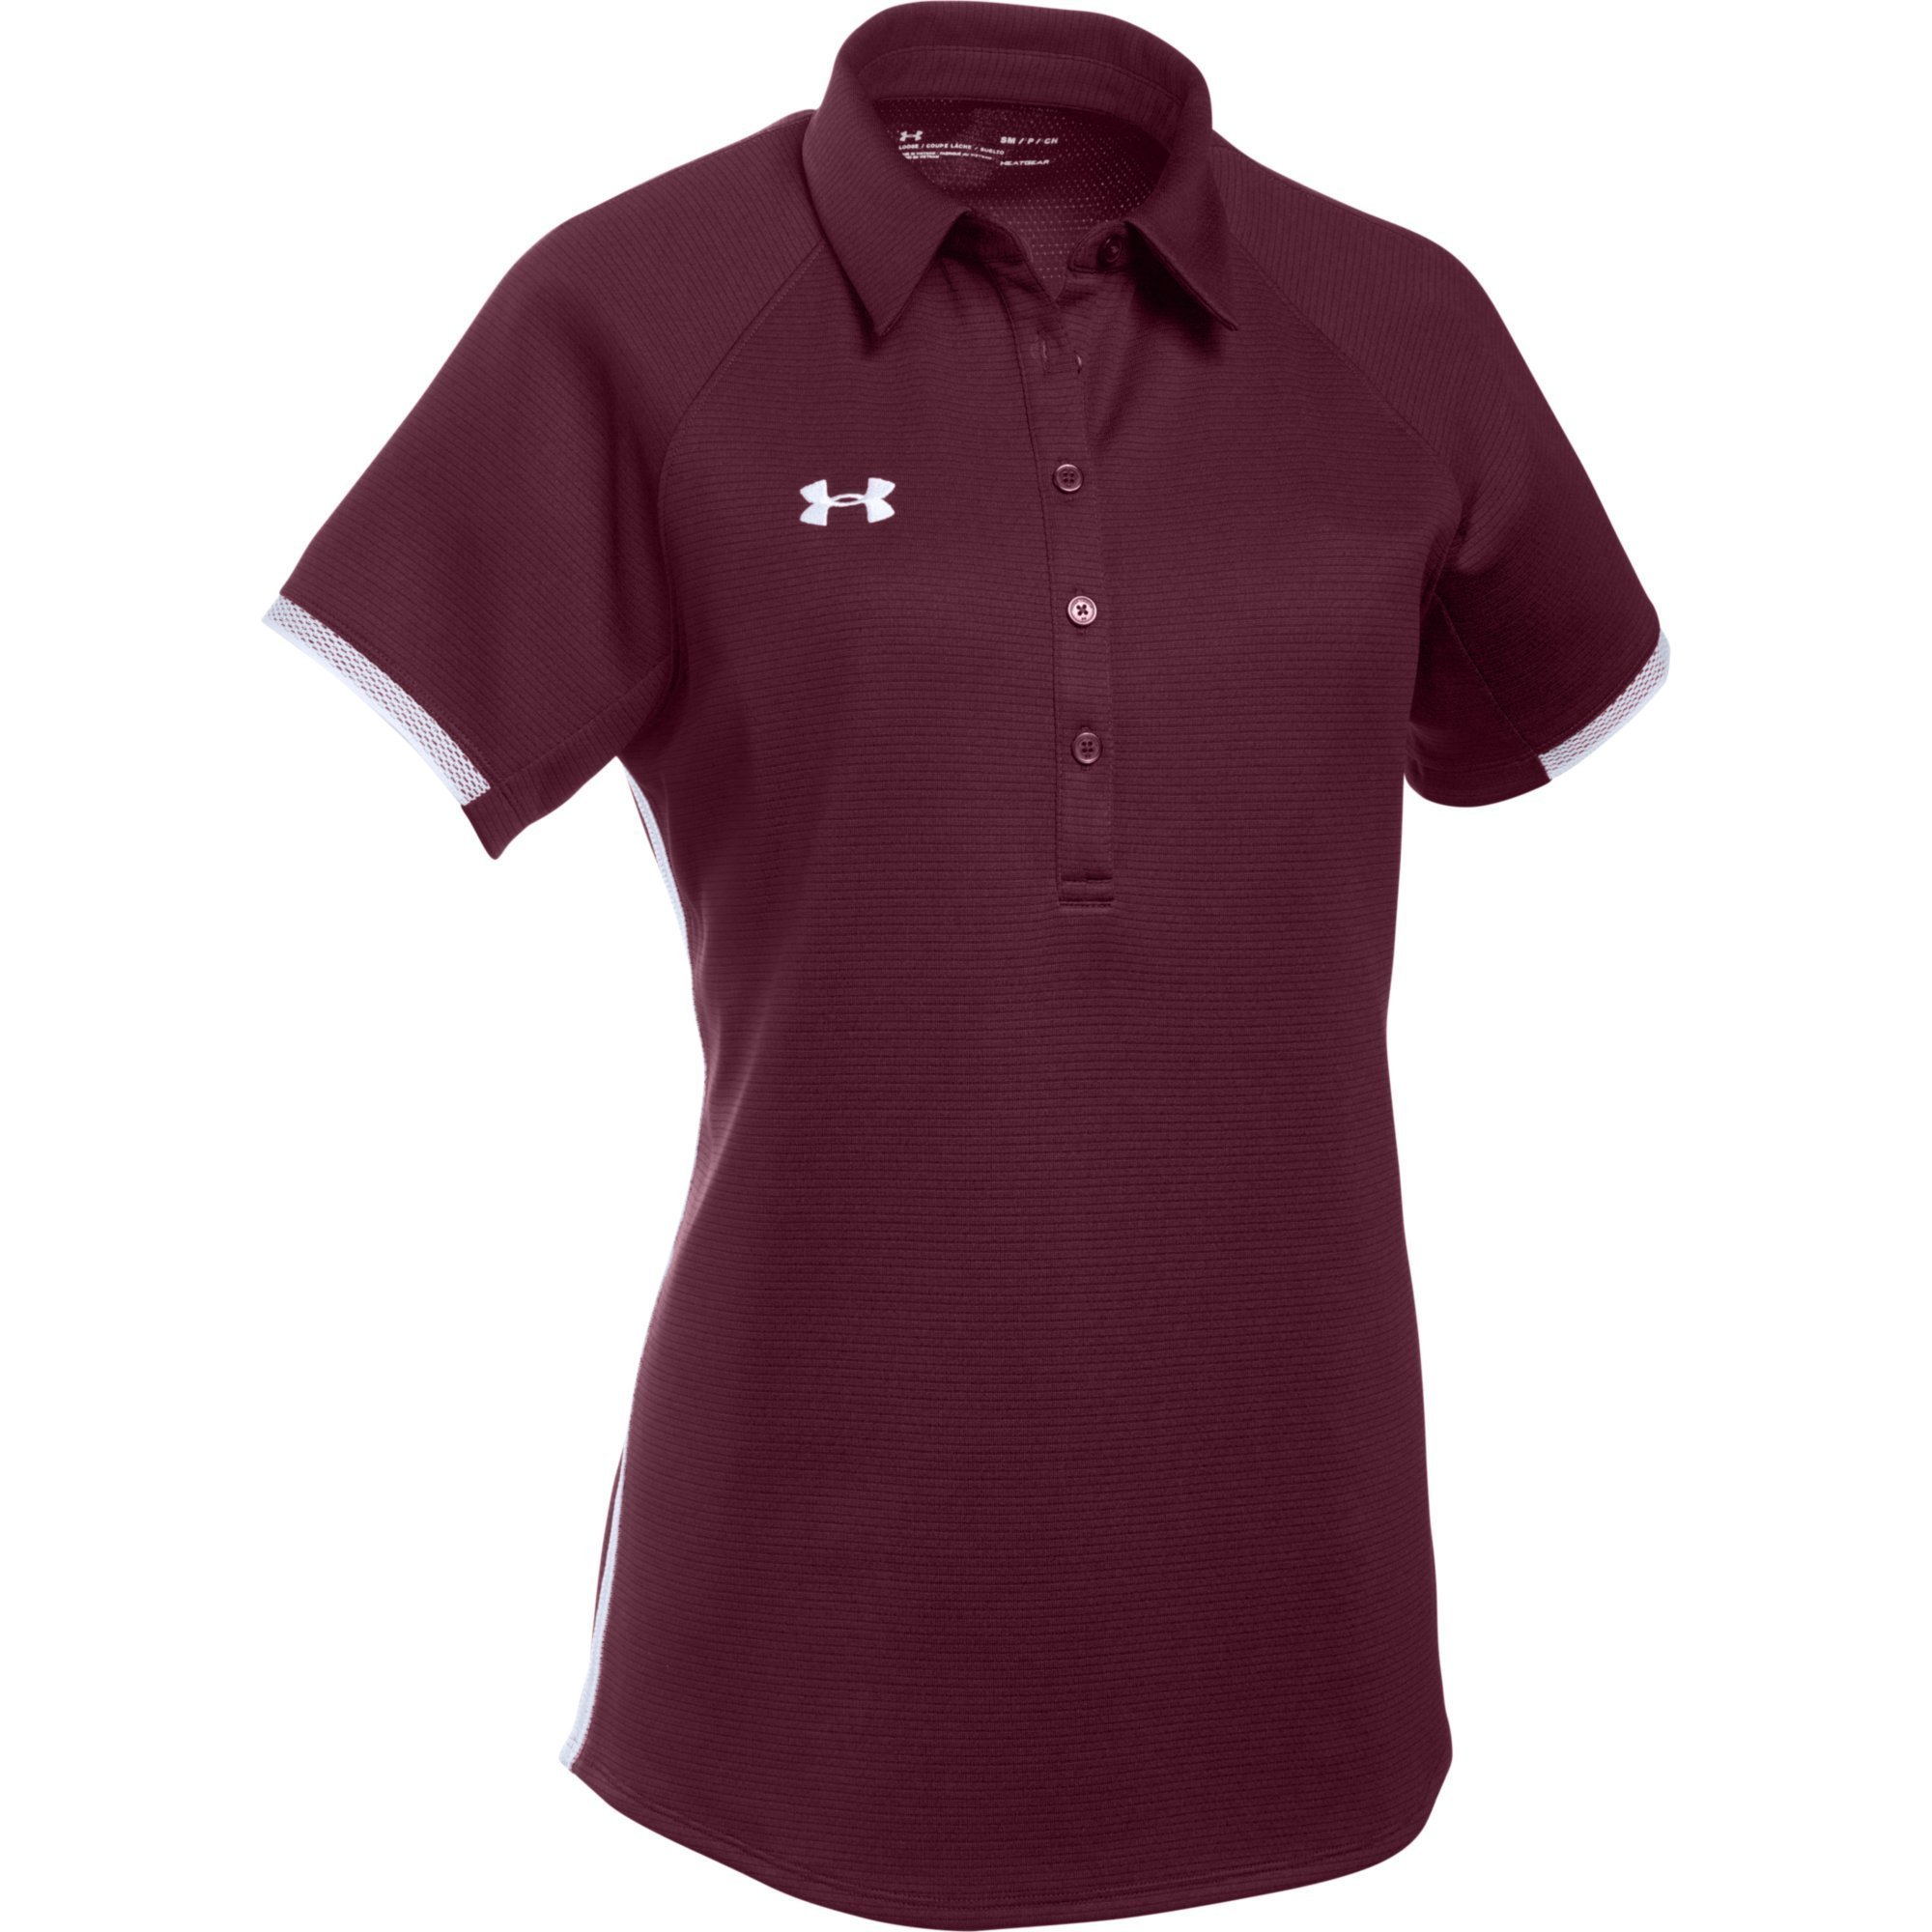 Under Armour Women's UA Rival Polo (XX-Large, Maroon-White) by Under Armour